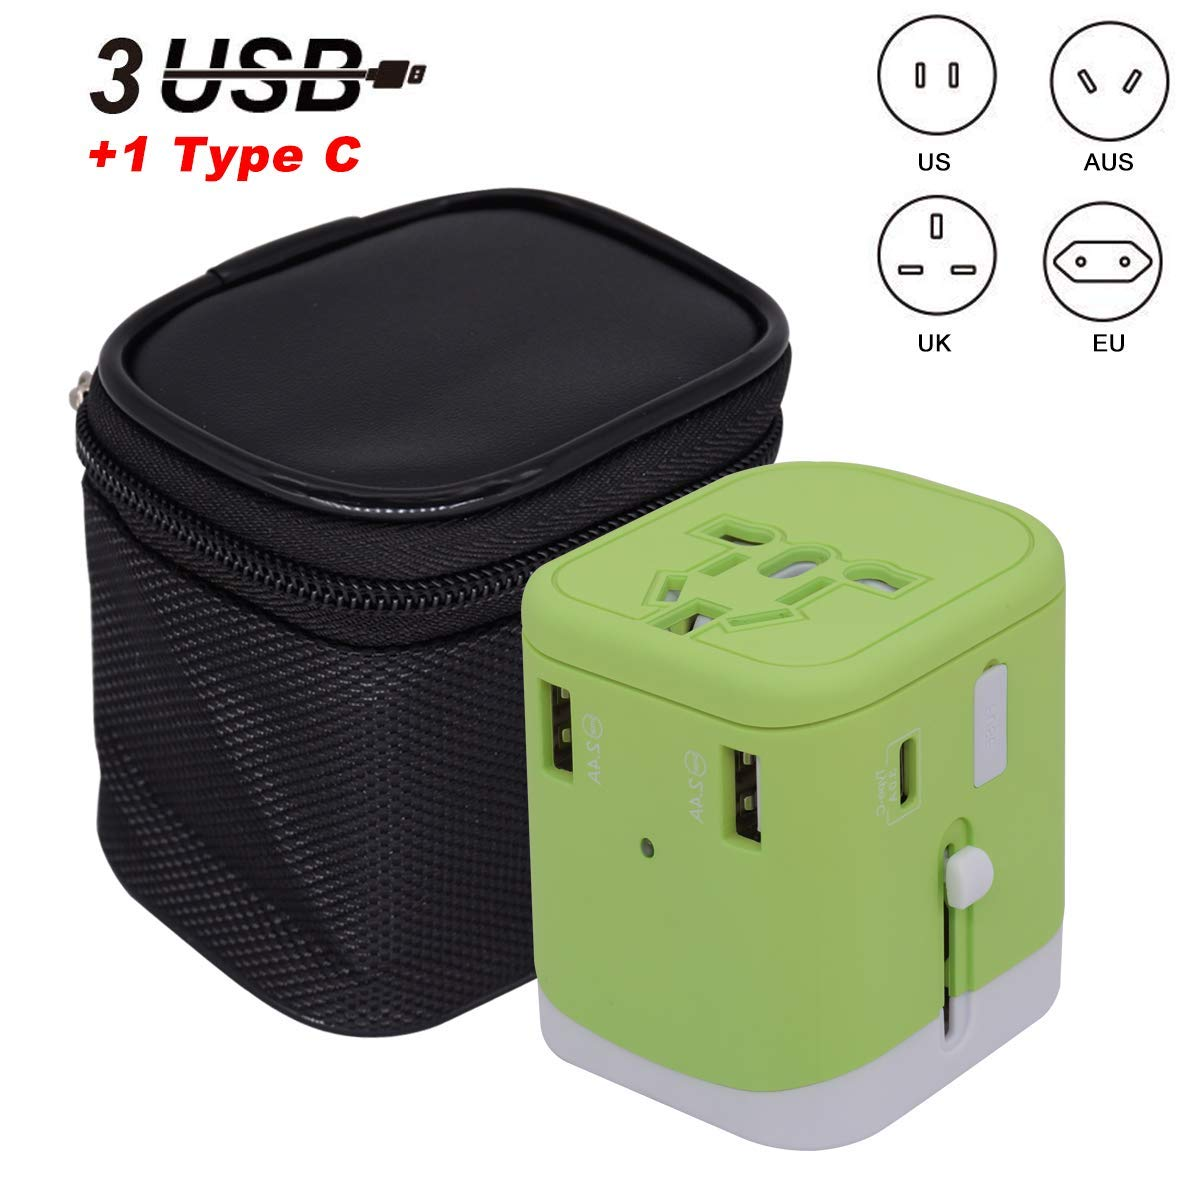 Universal Travel Adapter, Worldwide All-in-one International Power Adapter 2.4A 4xUSB Wall Charger,European Adapter,Travel Adapter for US EU UK AU & Asian Countries (Green)